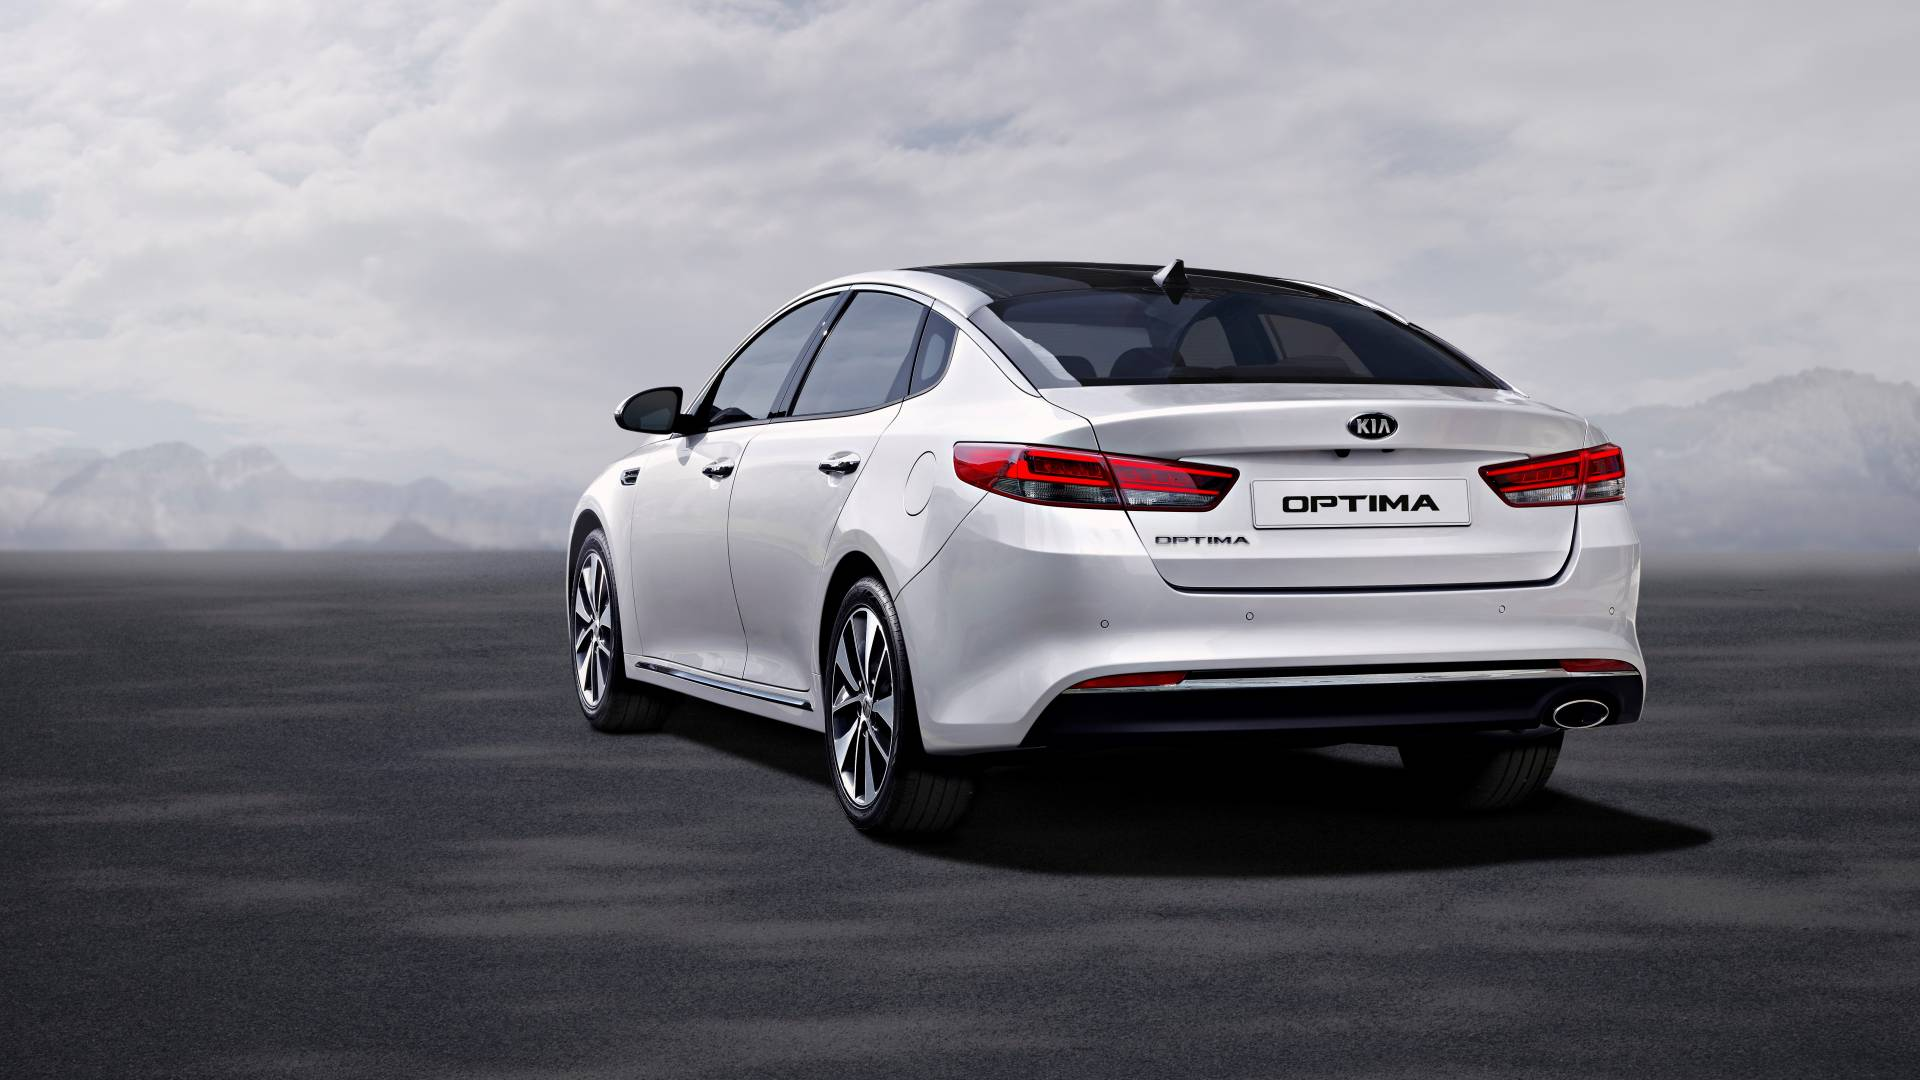 Kia-Optima-design.jpg